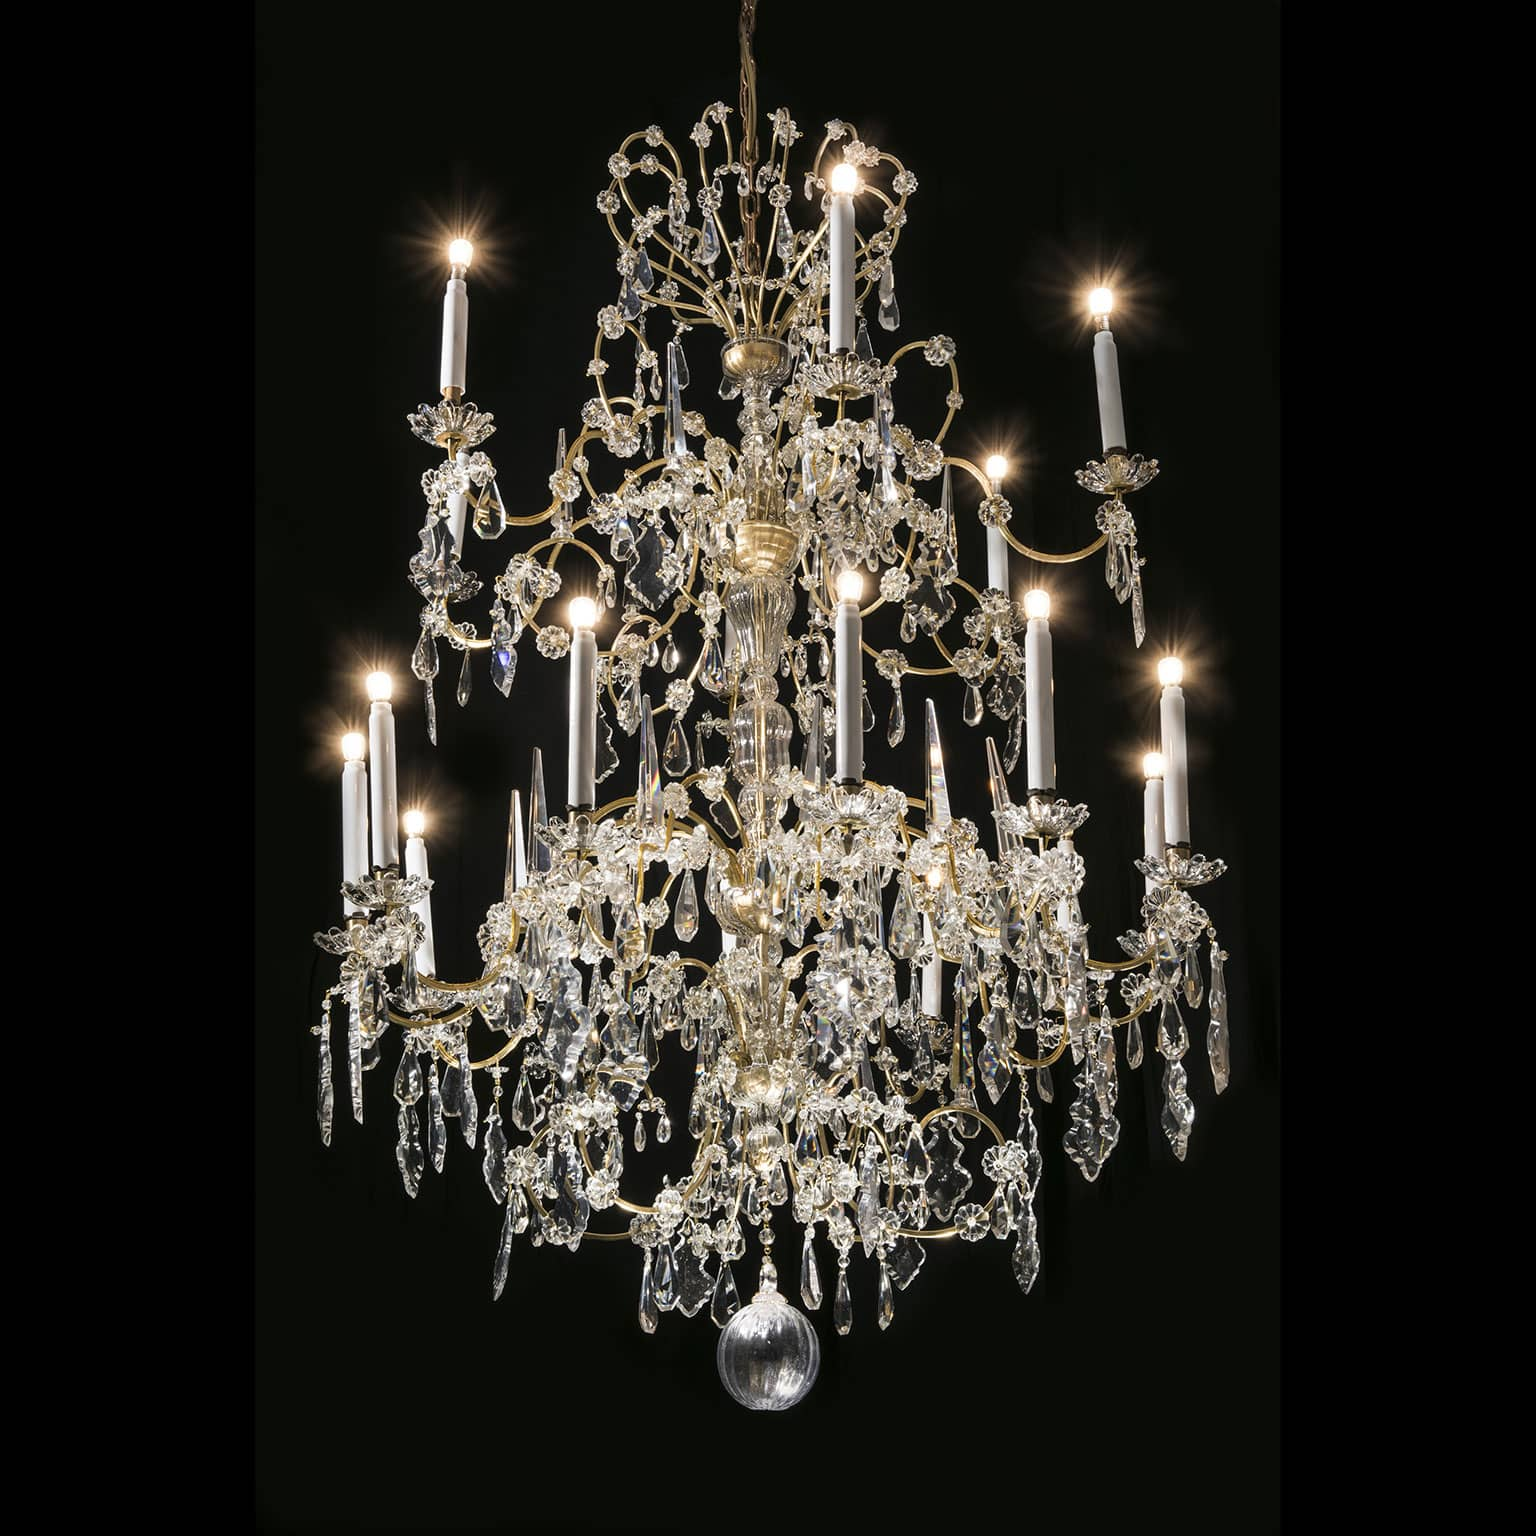 bohemian lighting. 19th Century Italian Bohemian Crystal 18 Light Chandelier Lighting I